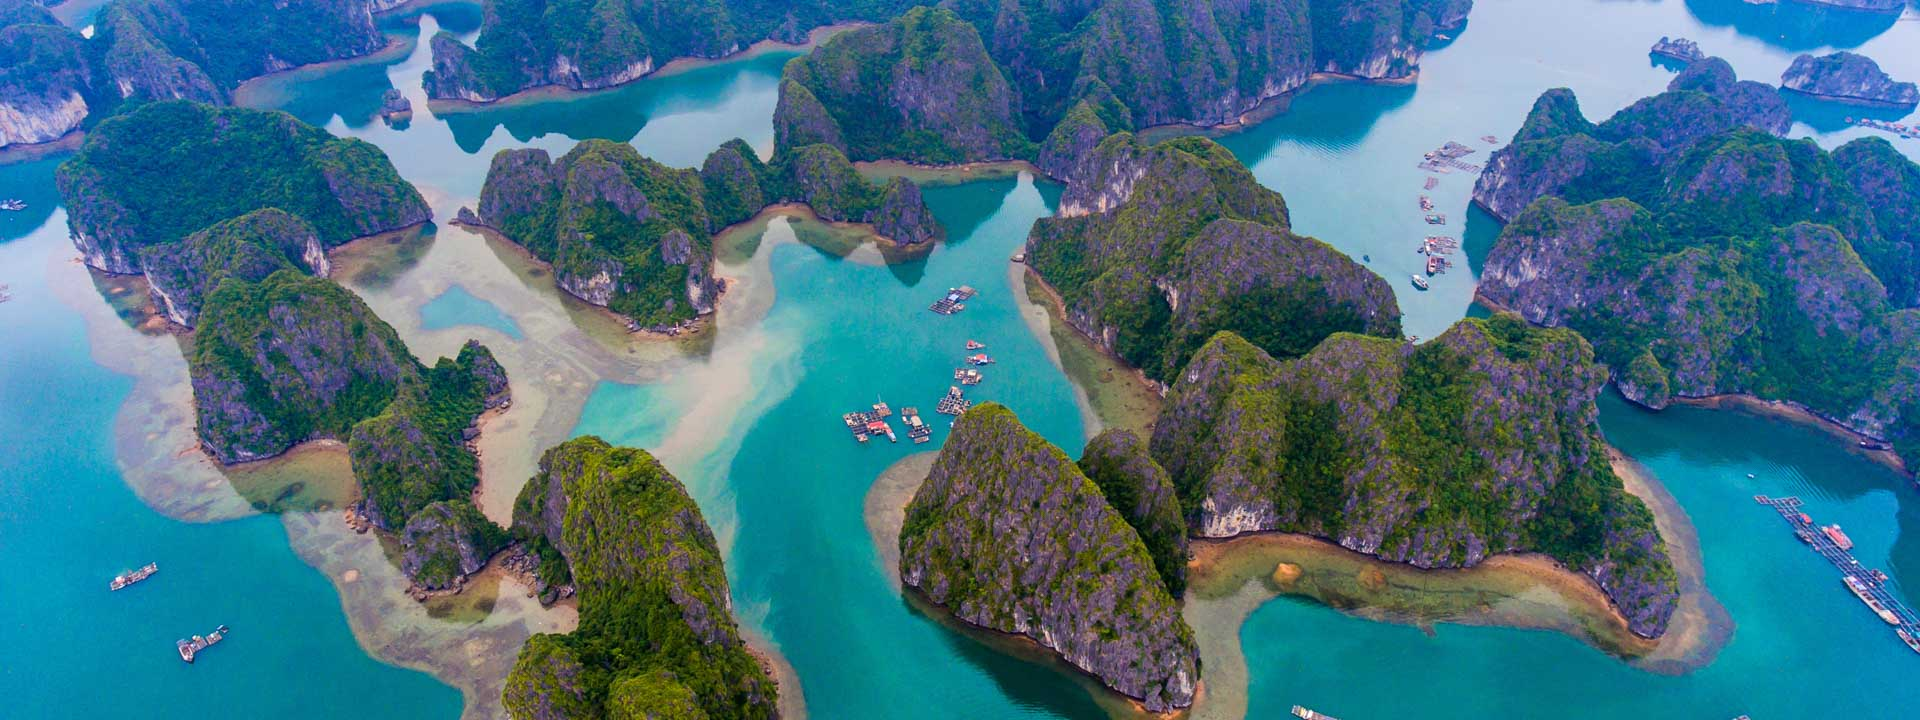 Halong Tour By Seaplane 1 Day